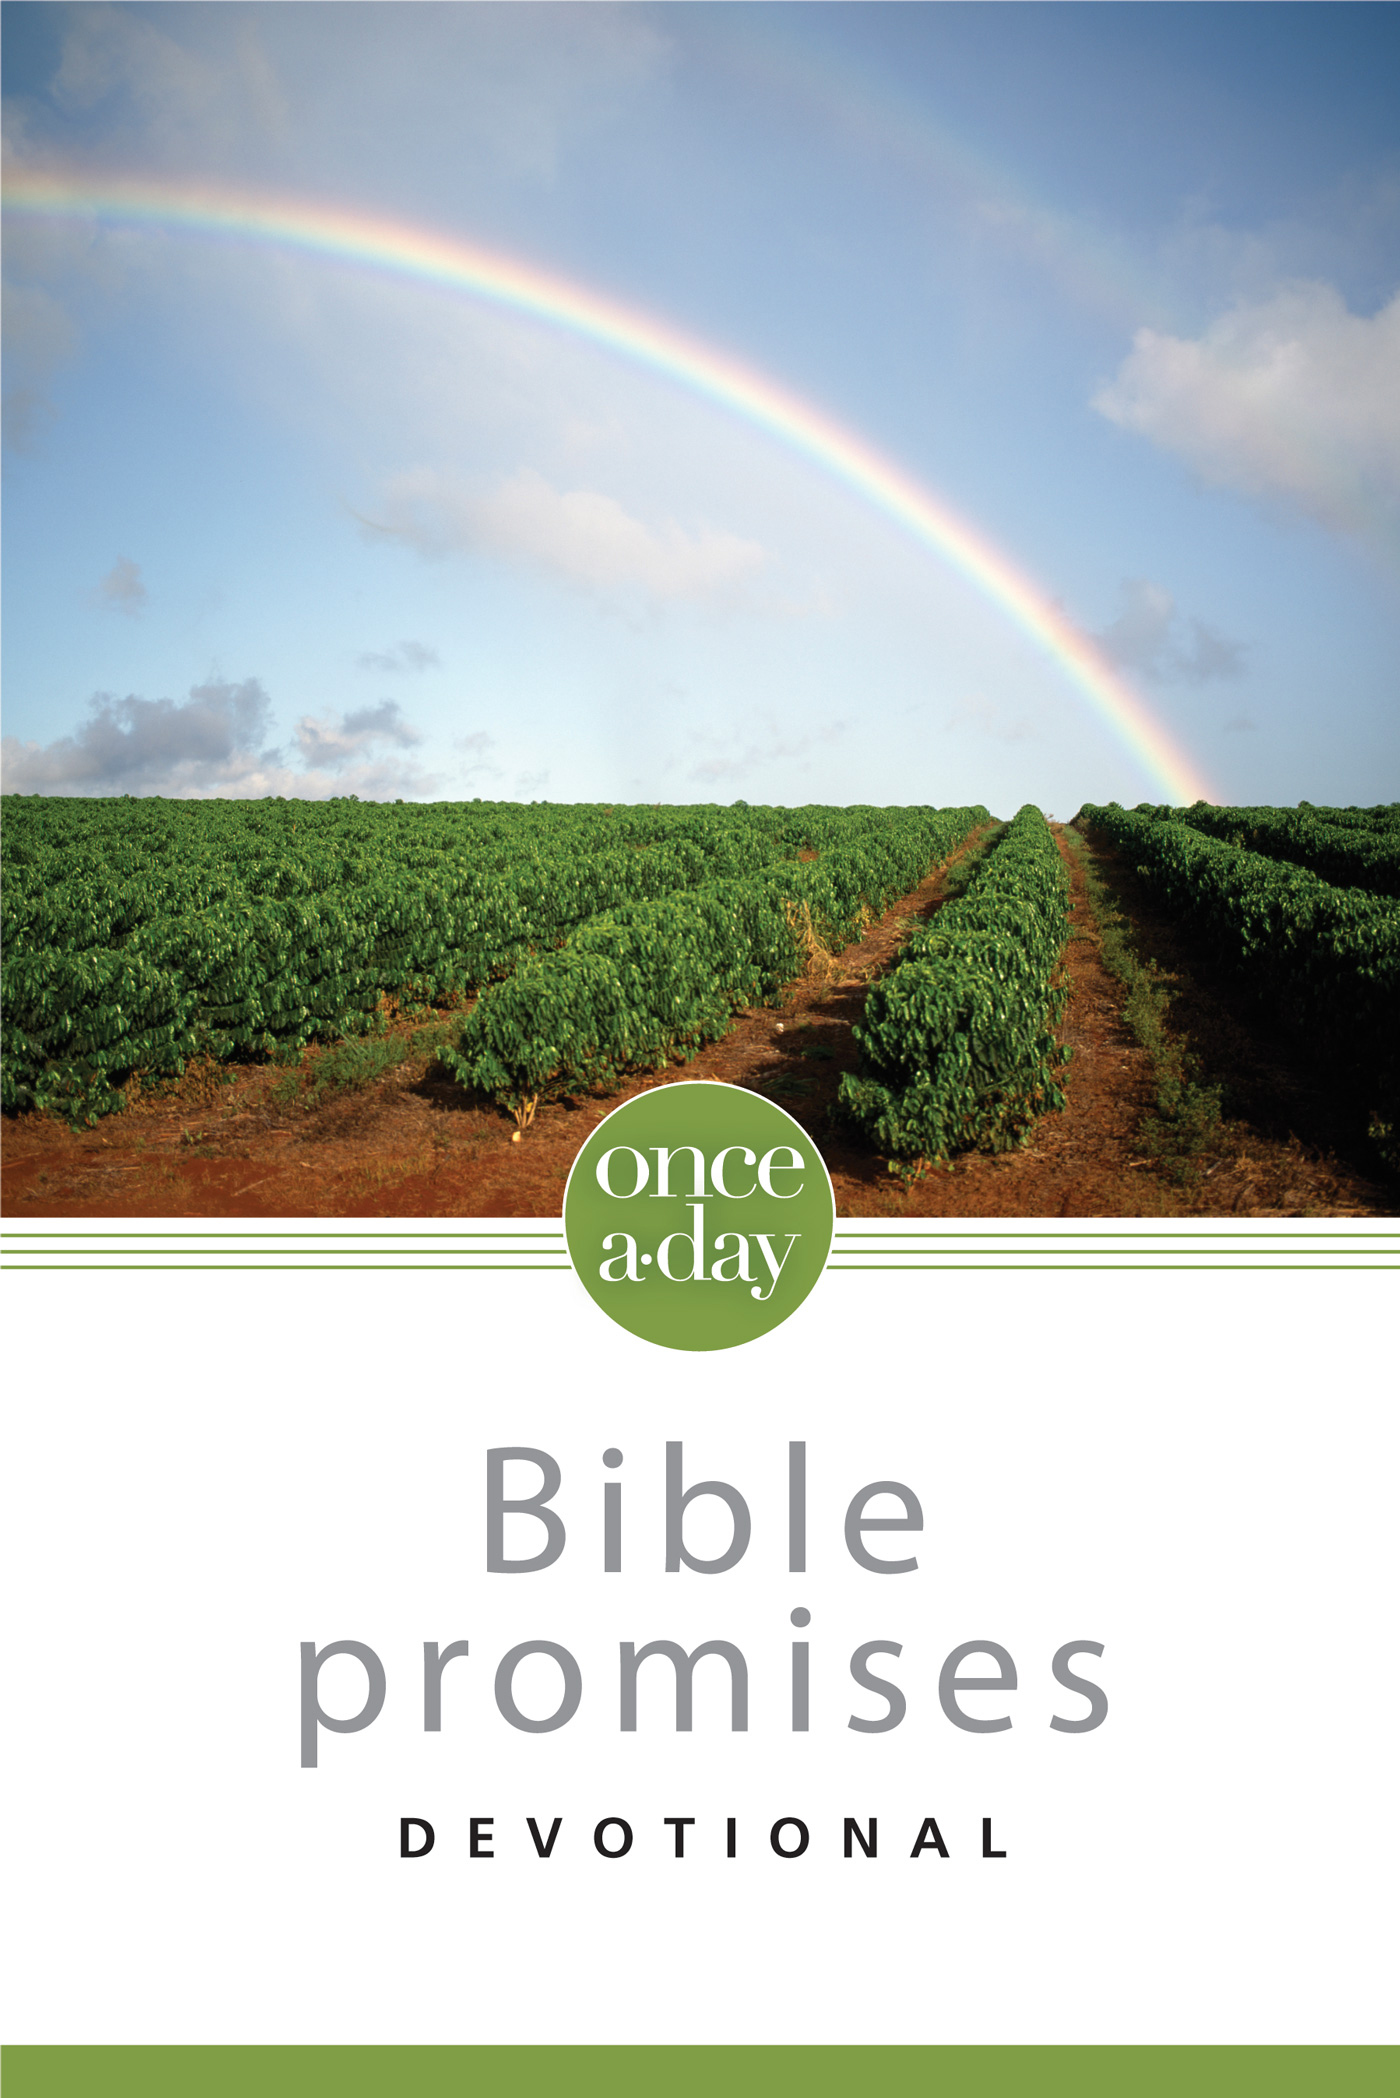 Once-A-Day Bible Promises Devotional By: Livingstone Corporation